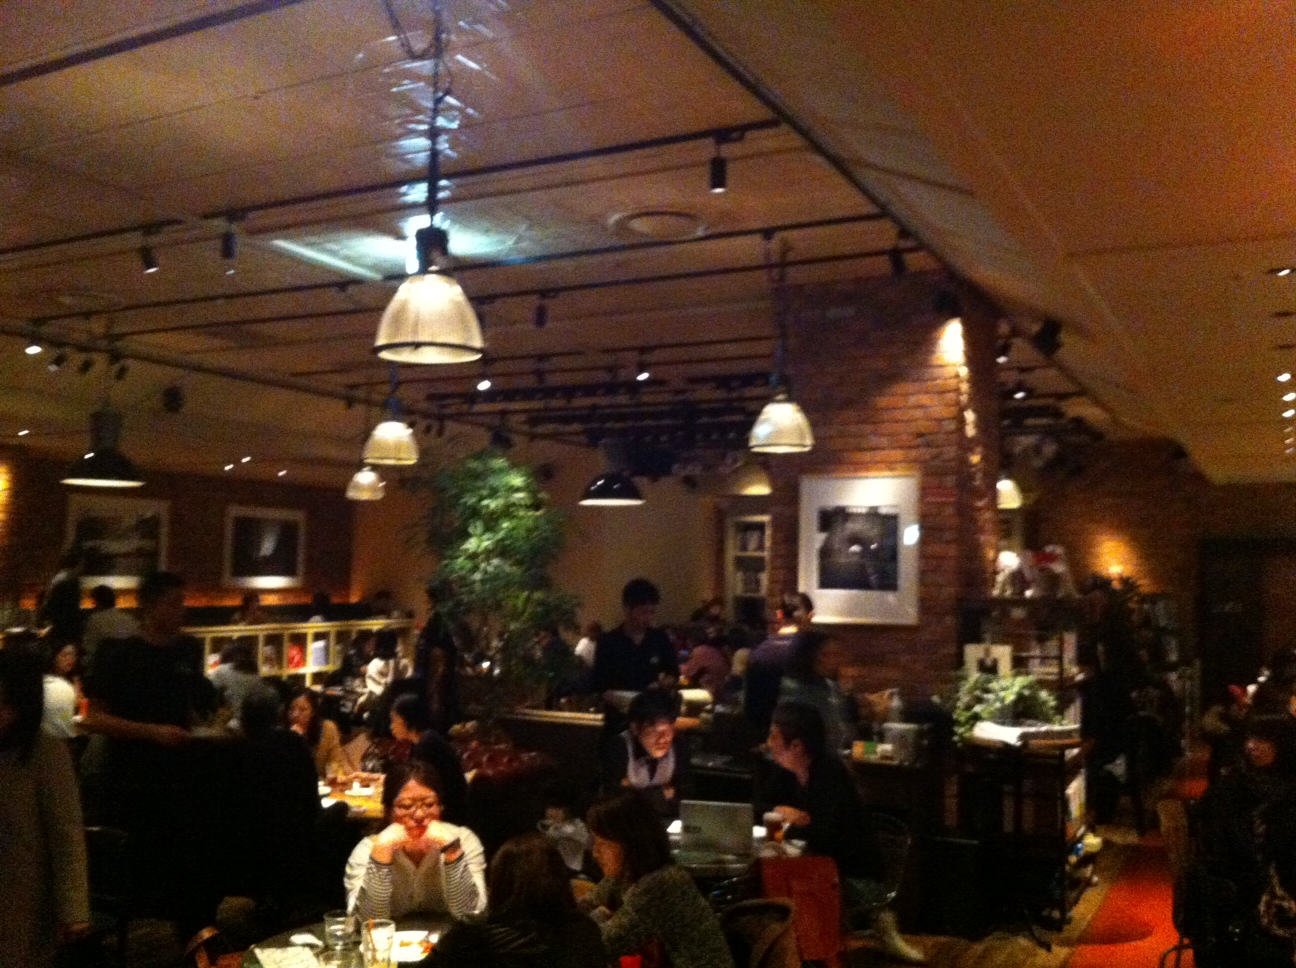 The bar restaurant space of Brooklyn Parlor, Shinjuku 3-chome, Tokyo.